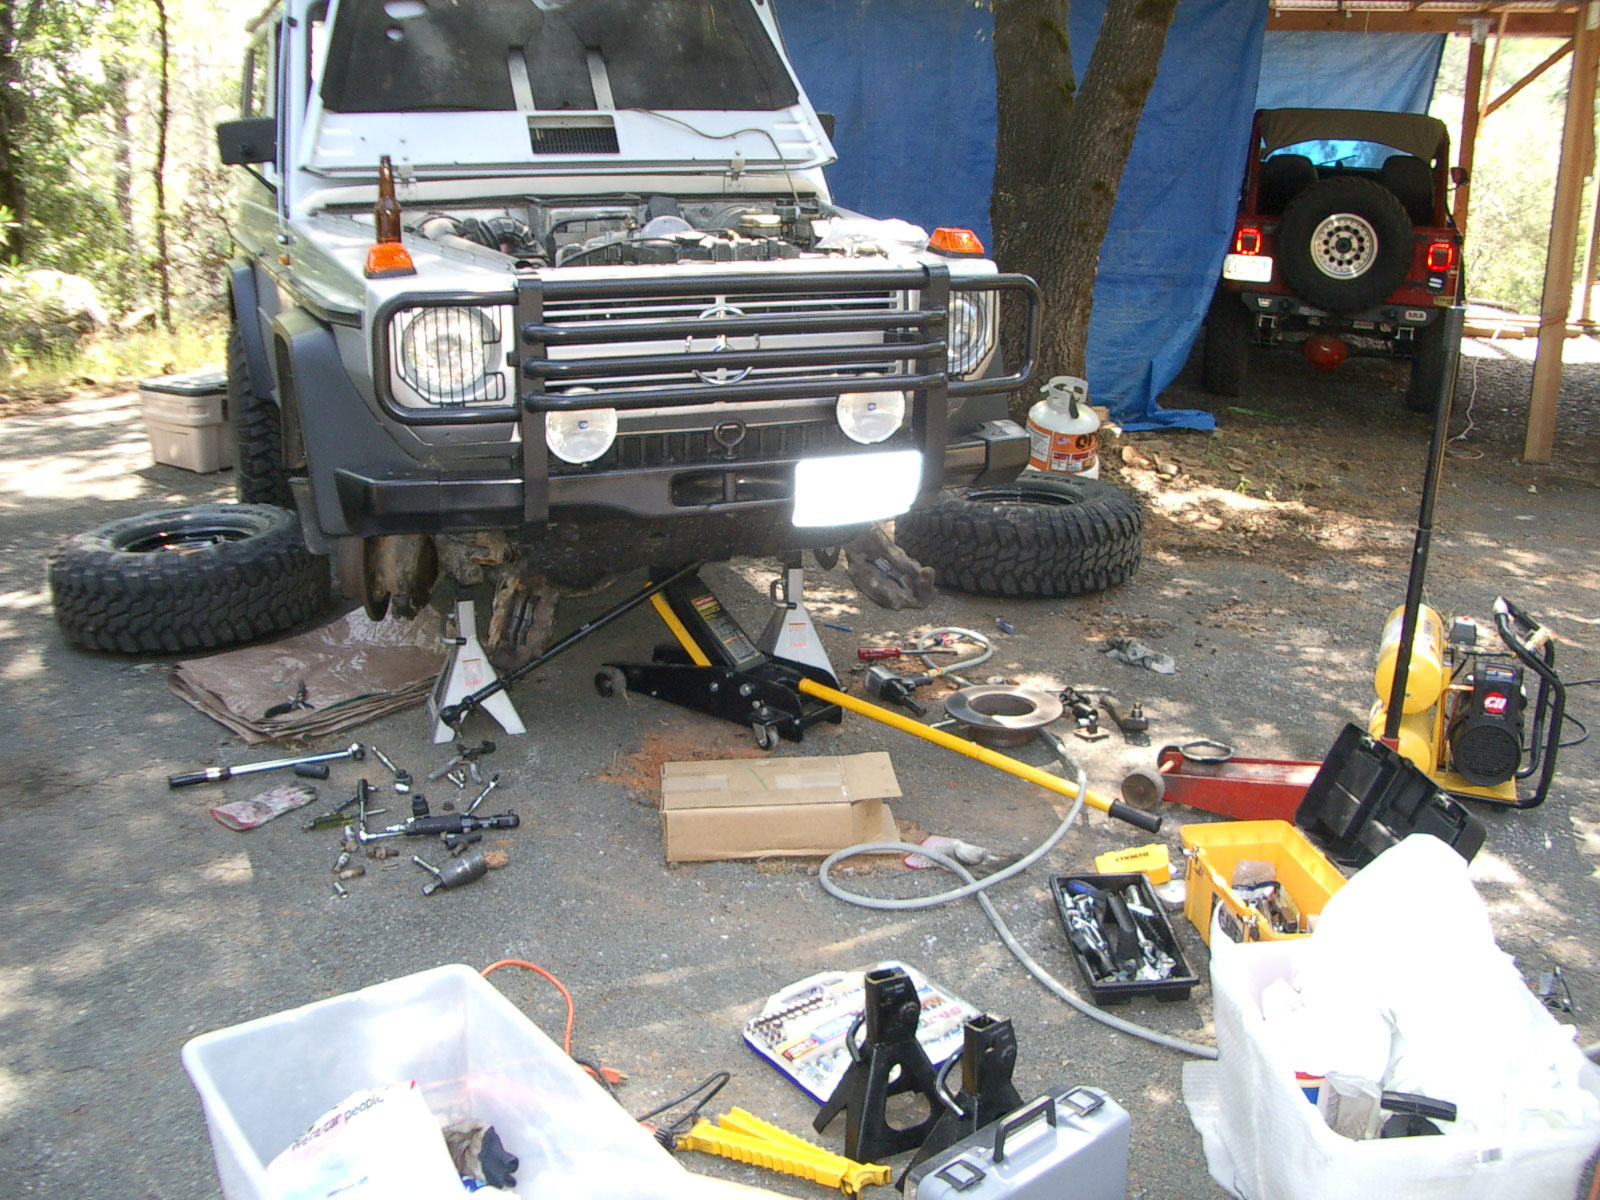 A complete axle rebuild is typical over a weekend with help from club friends.